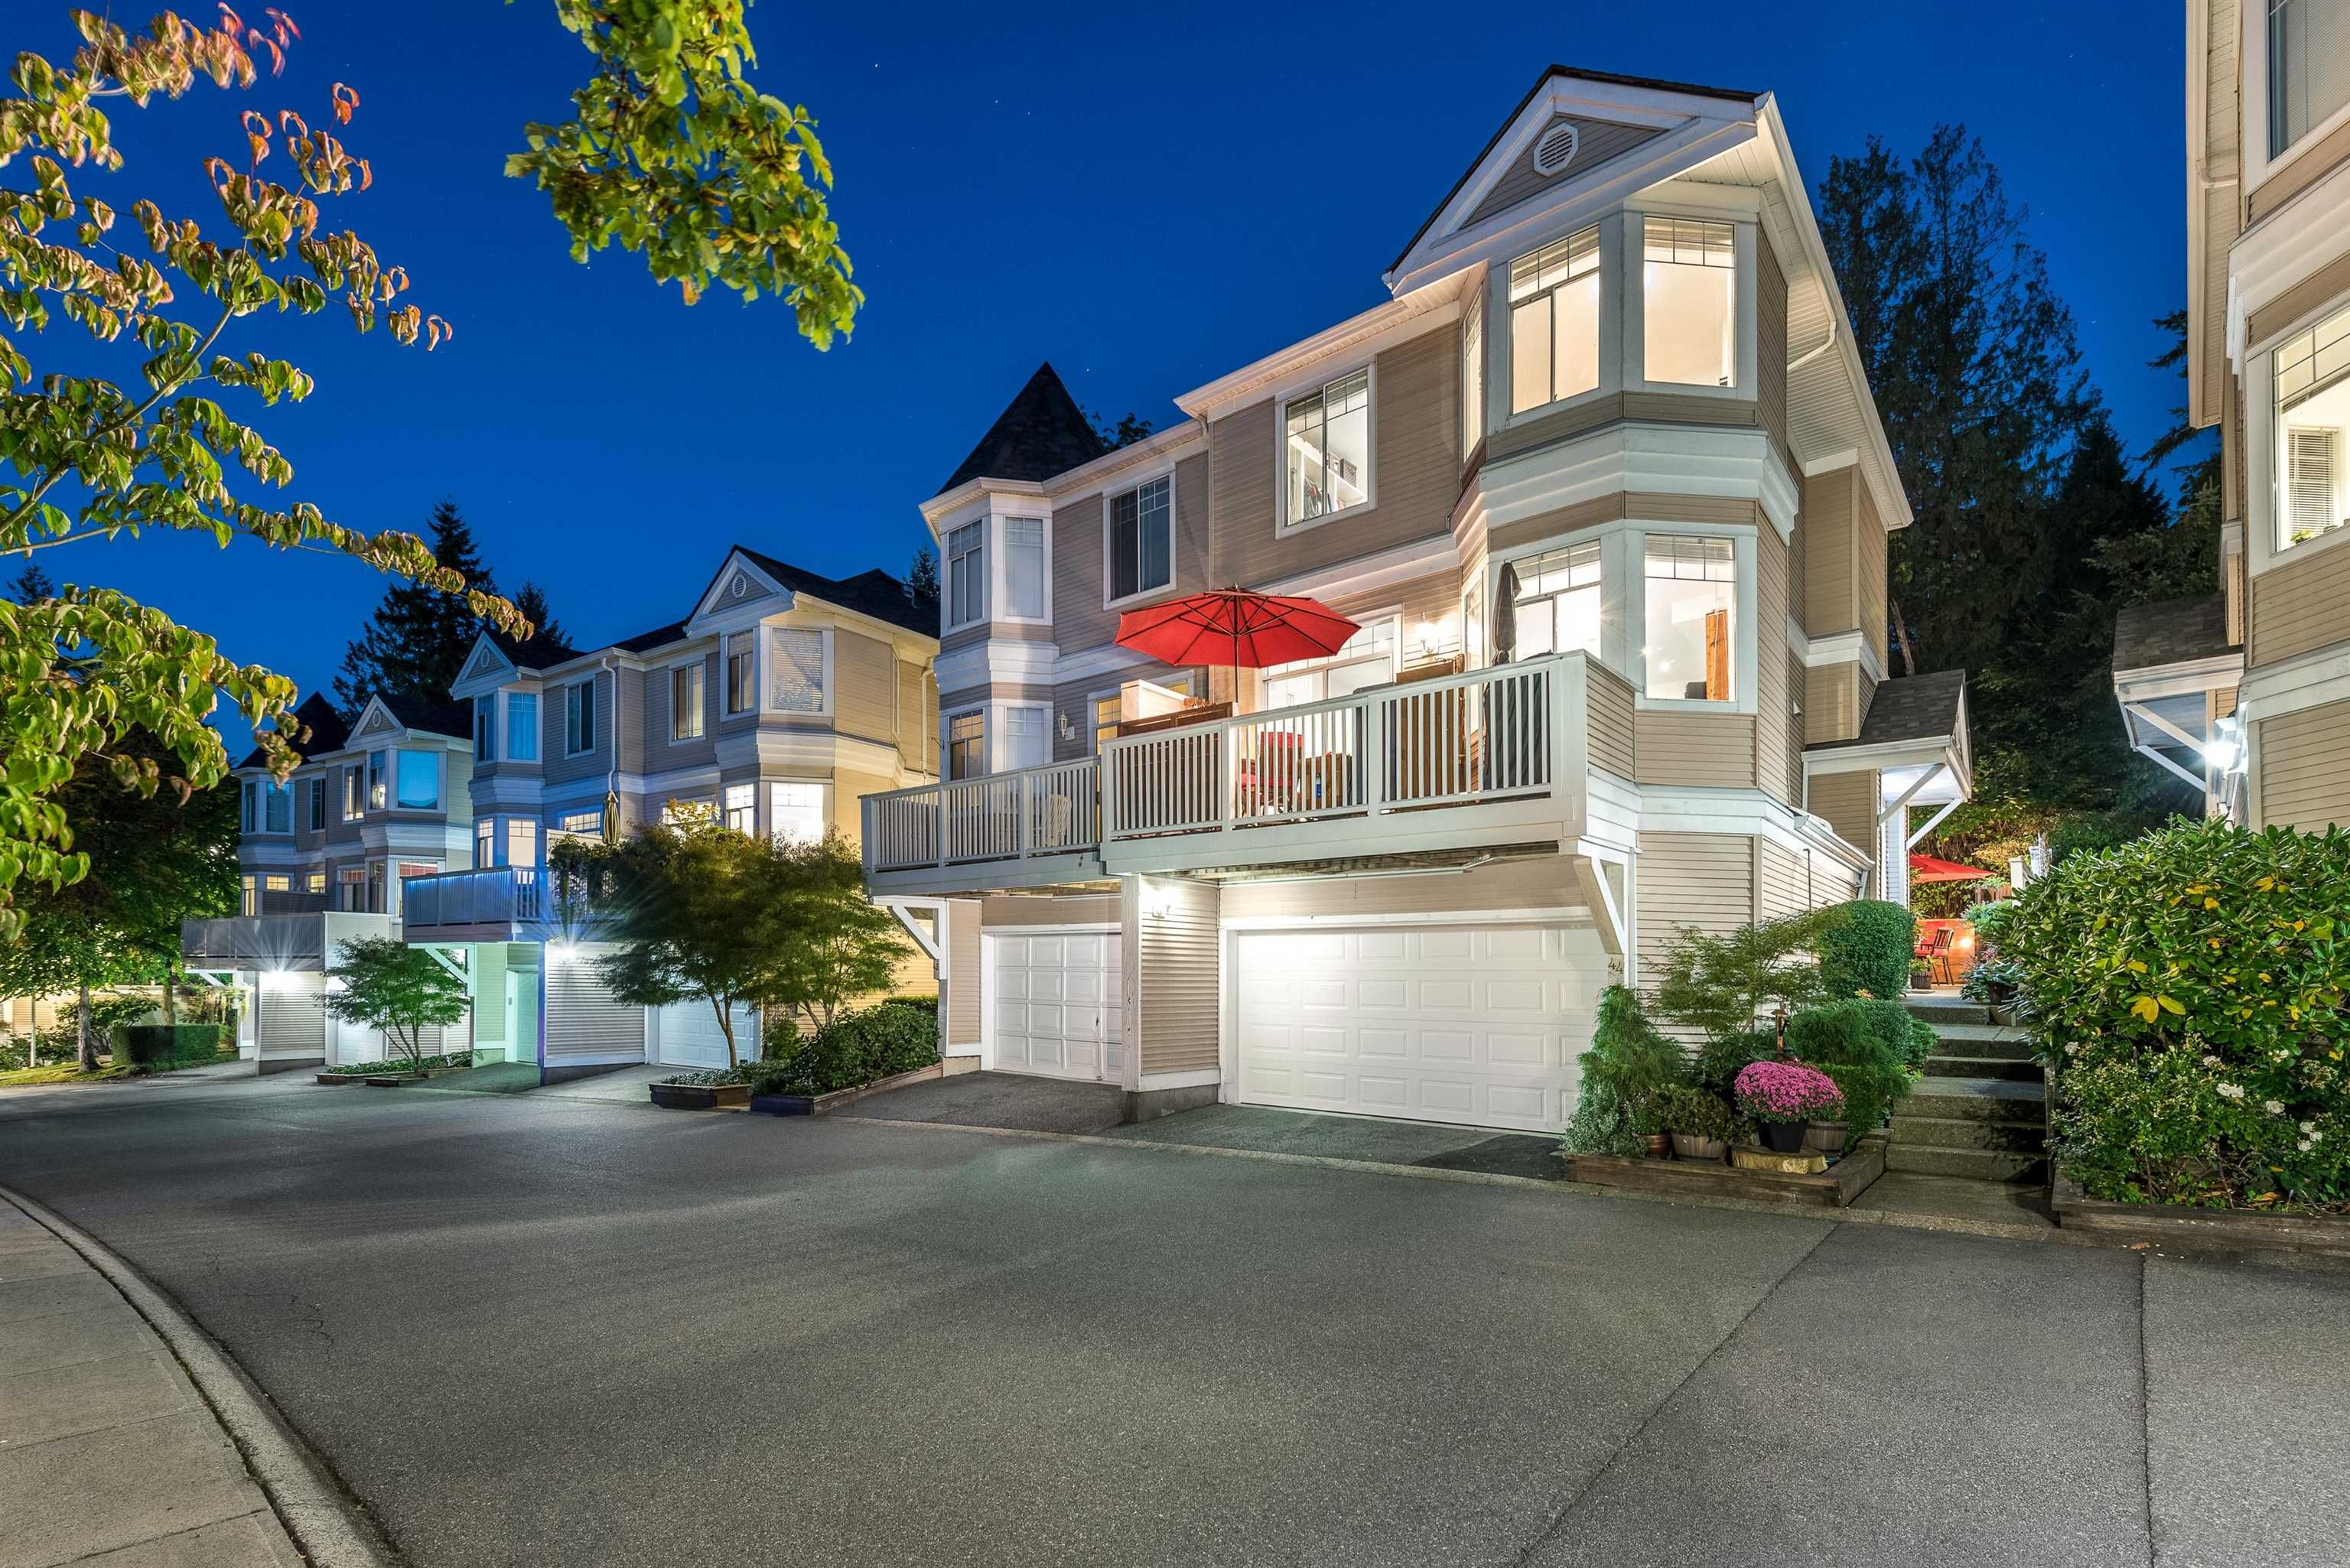 """Main Photo: 44 7501 CUMBERLAND Street in Burnaby: The Crest Townhouse for sale in """"DEERFIELD IN THE CREST"""" (Burnaby East)  : MLS®# R2621716"""